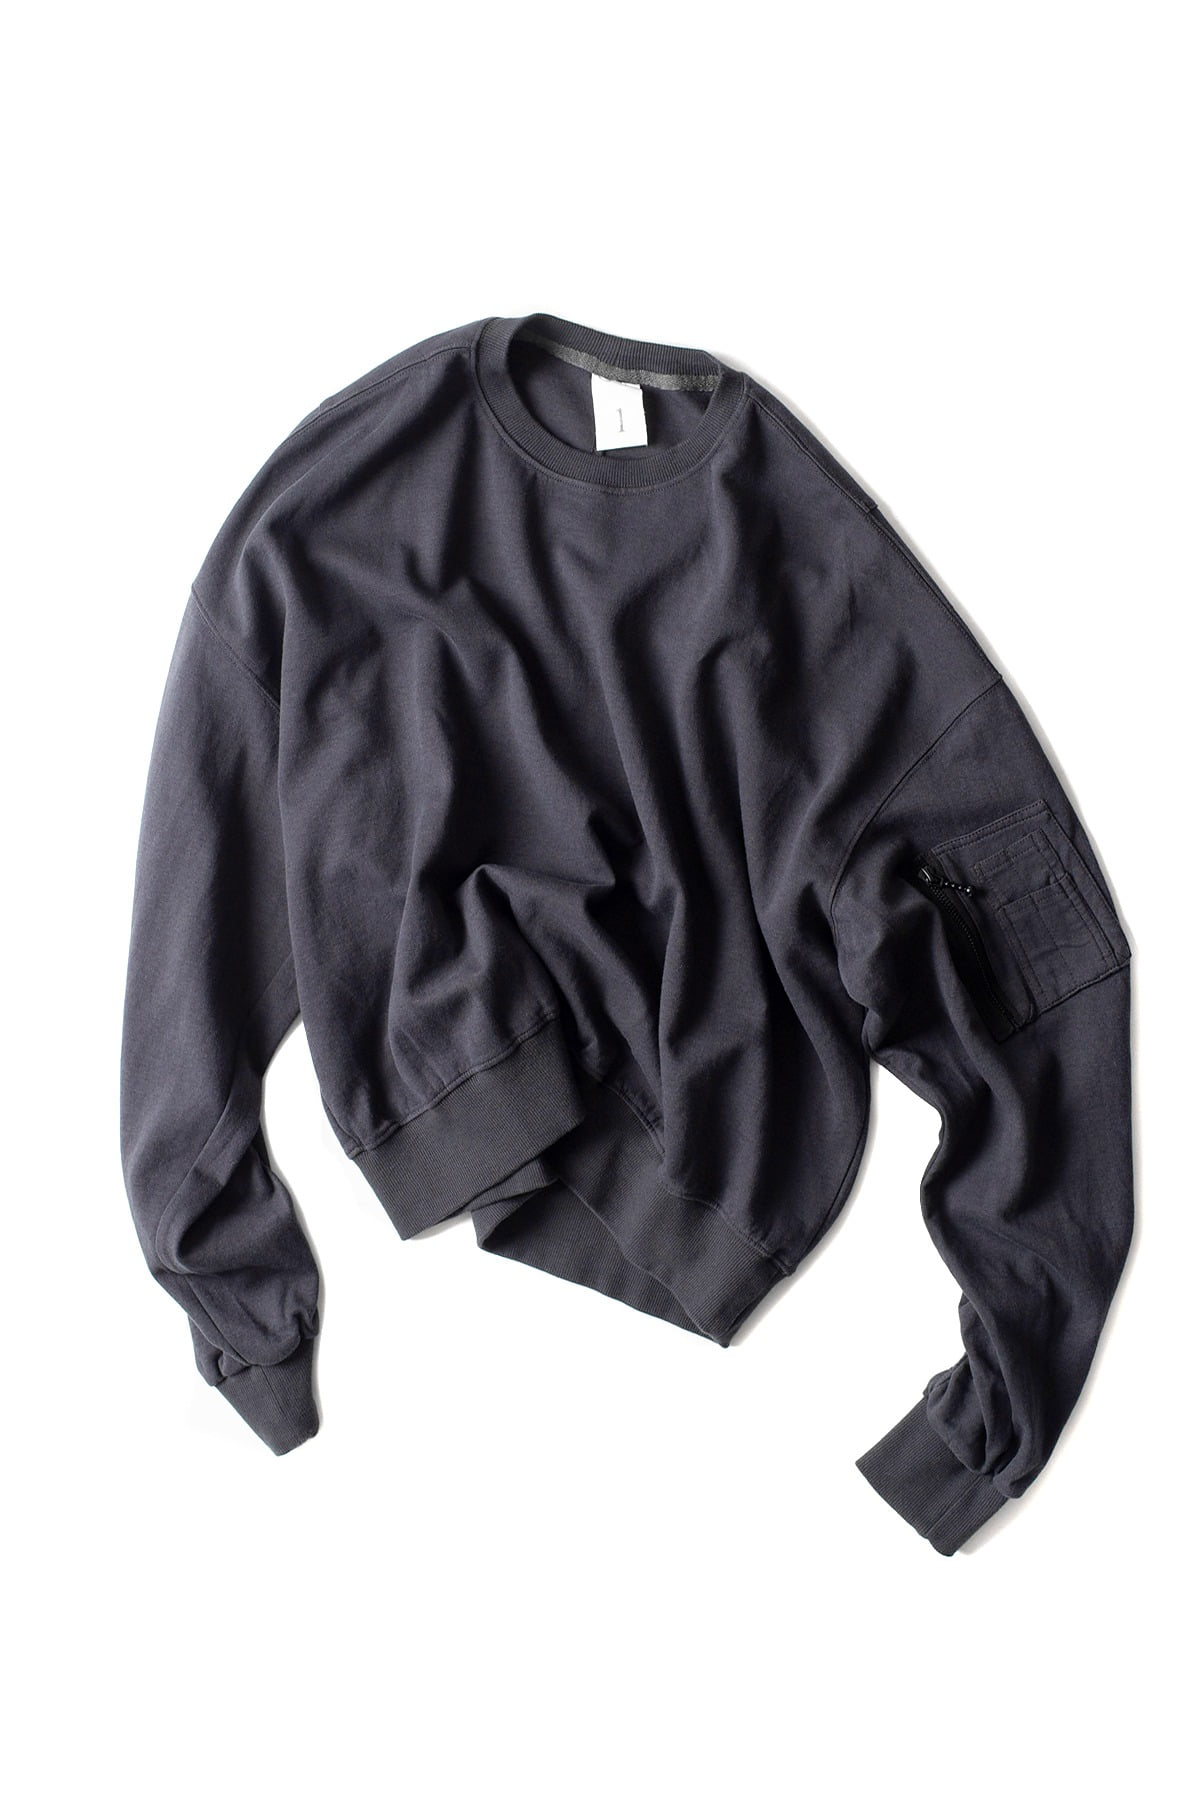 Ooparts : Ma-1 Cotton-jersey Sweatshirt (Charcoal)